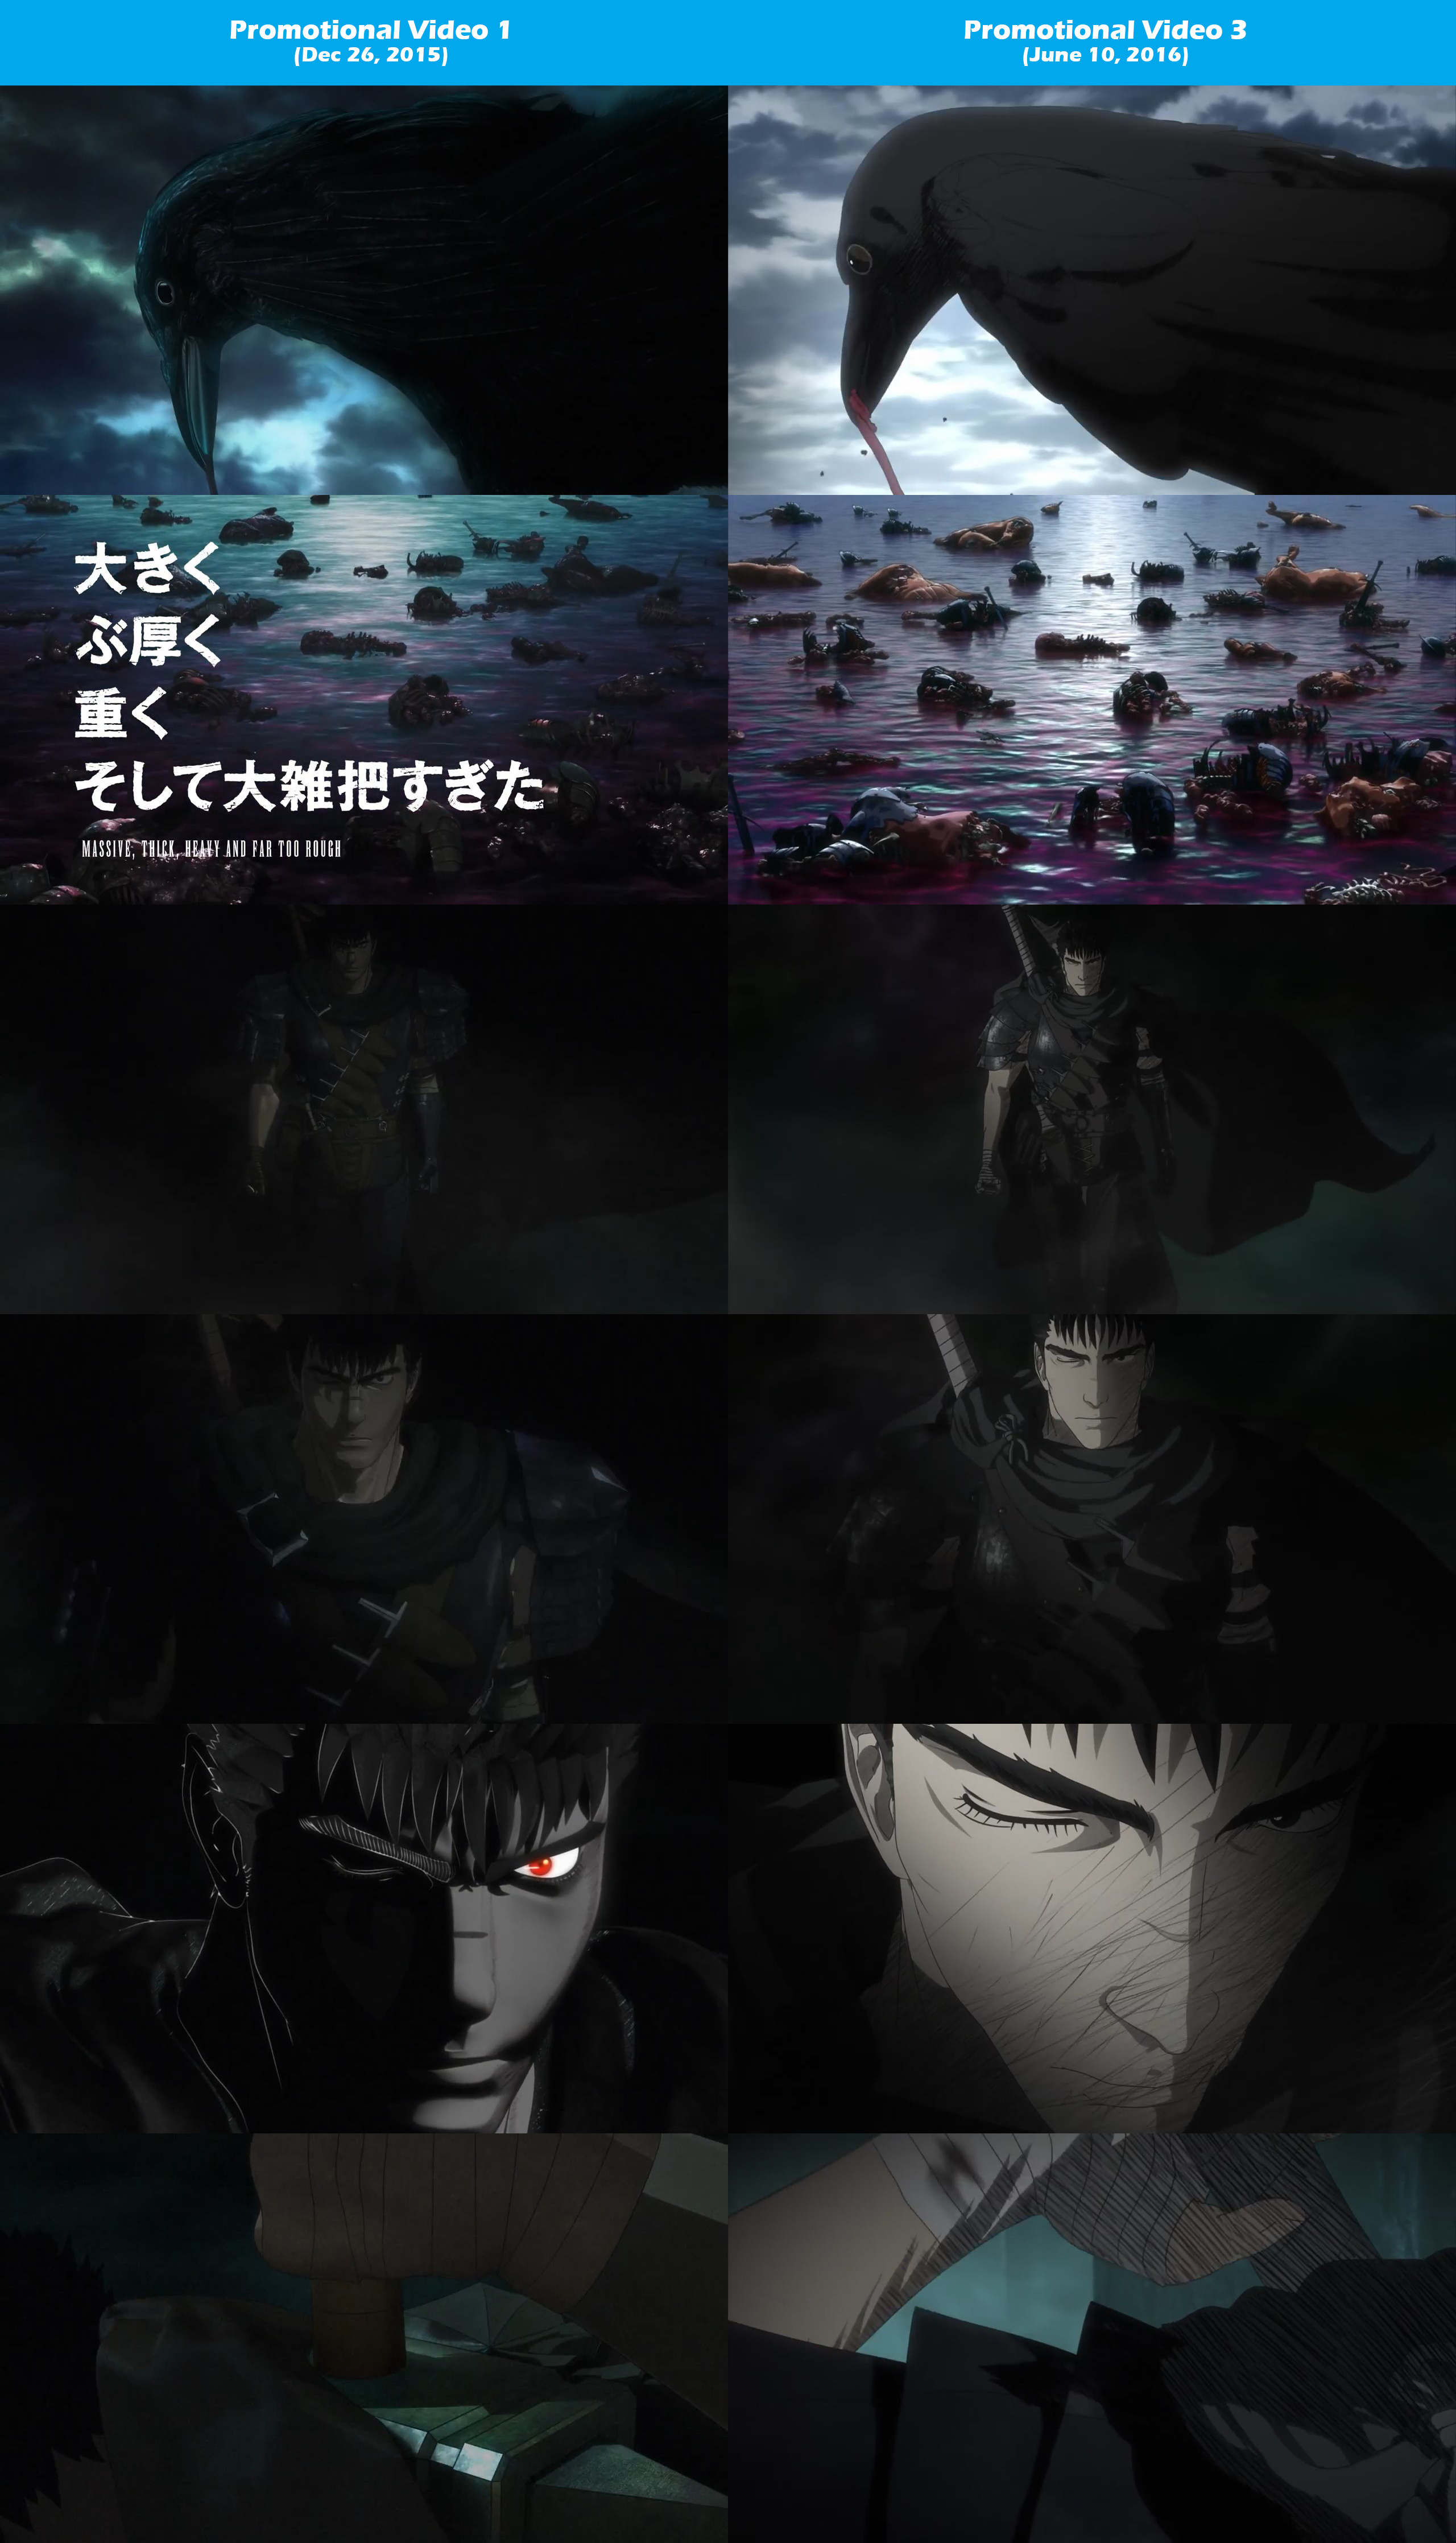 2016-Berserk-Anime-PV-1-vs-PV-3-Comparison-1